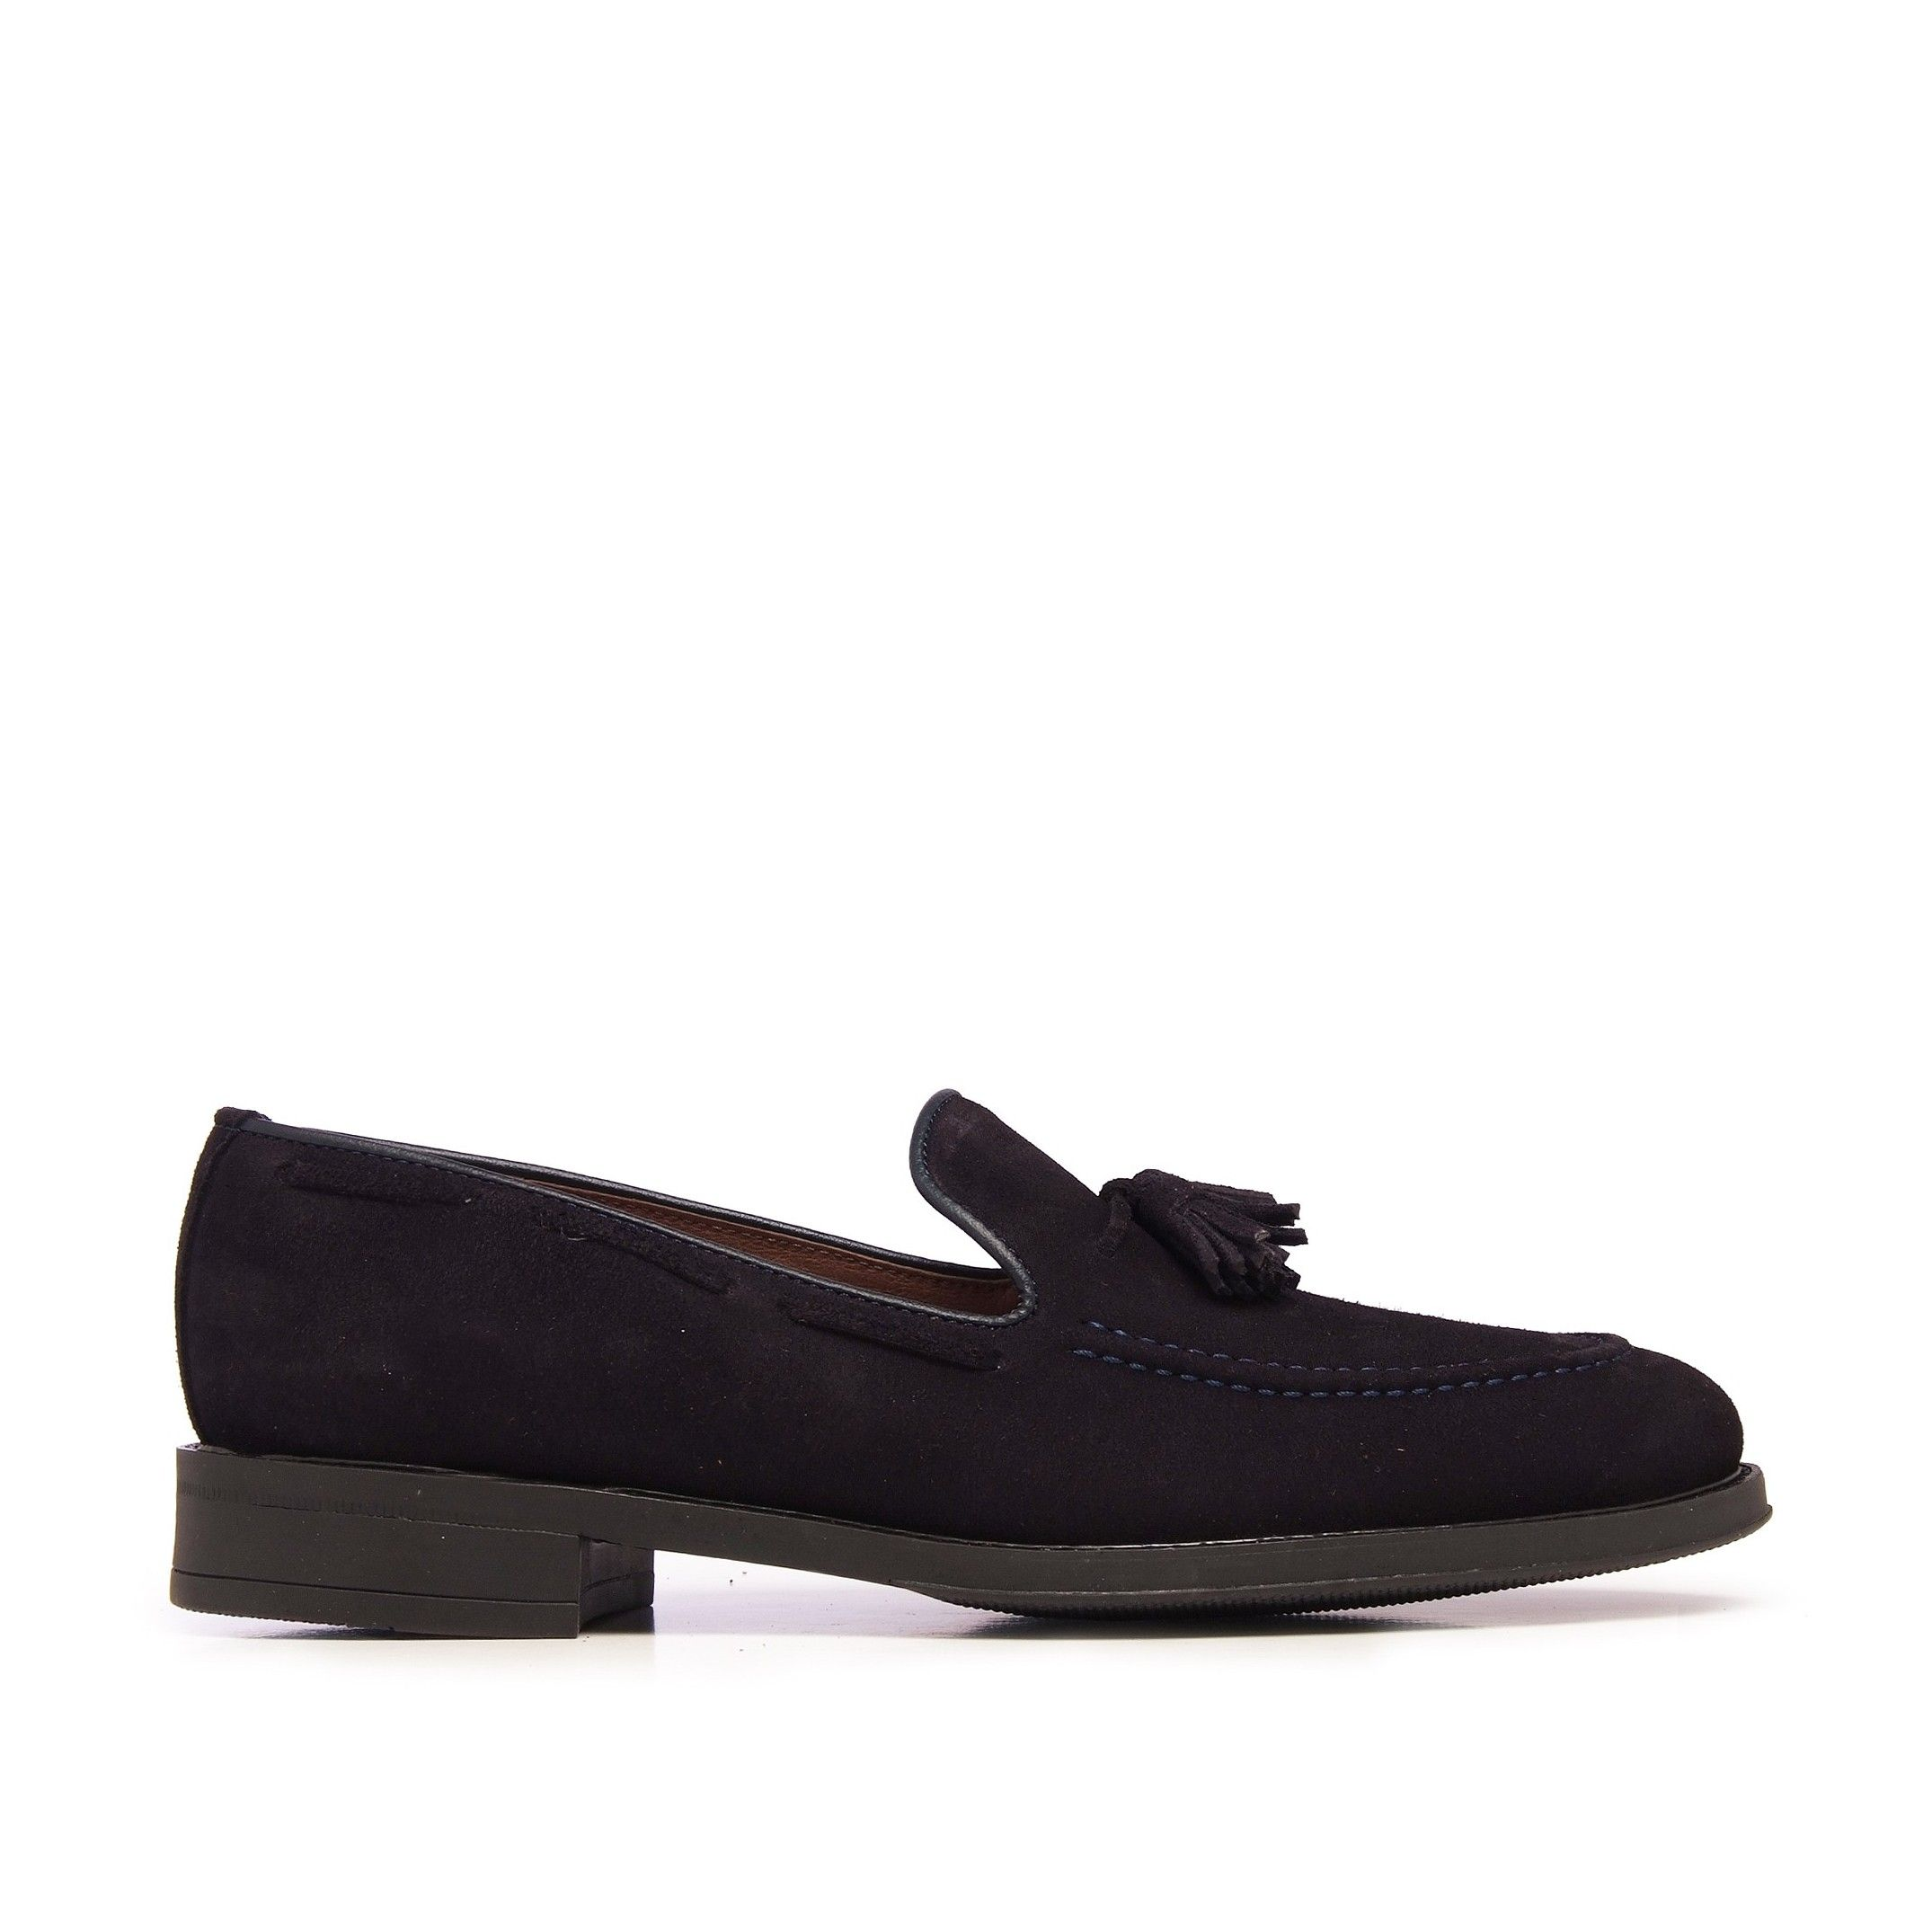 Castellanisimos Leather Moccasin Tassel Navy Blue Loafers Classic Shoes